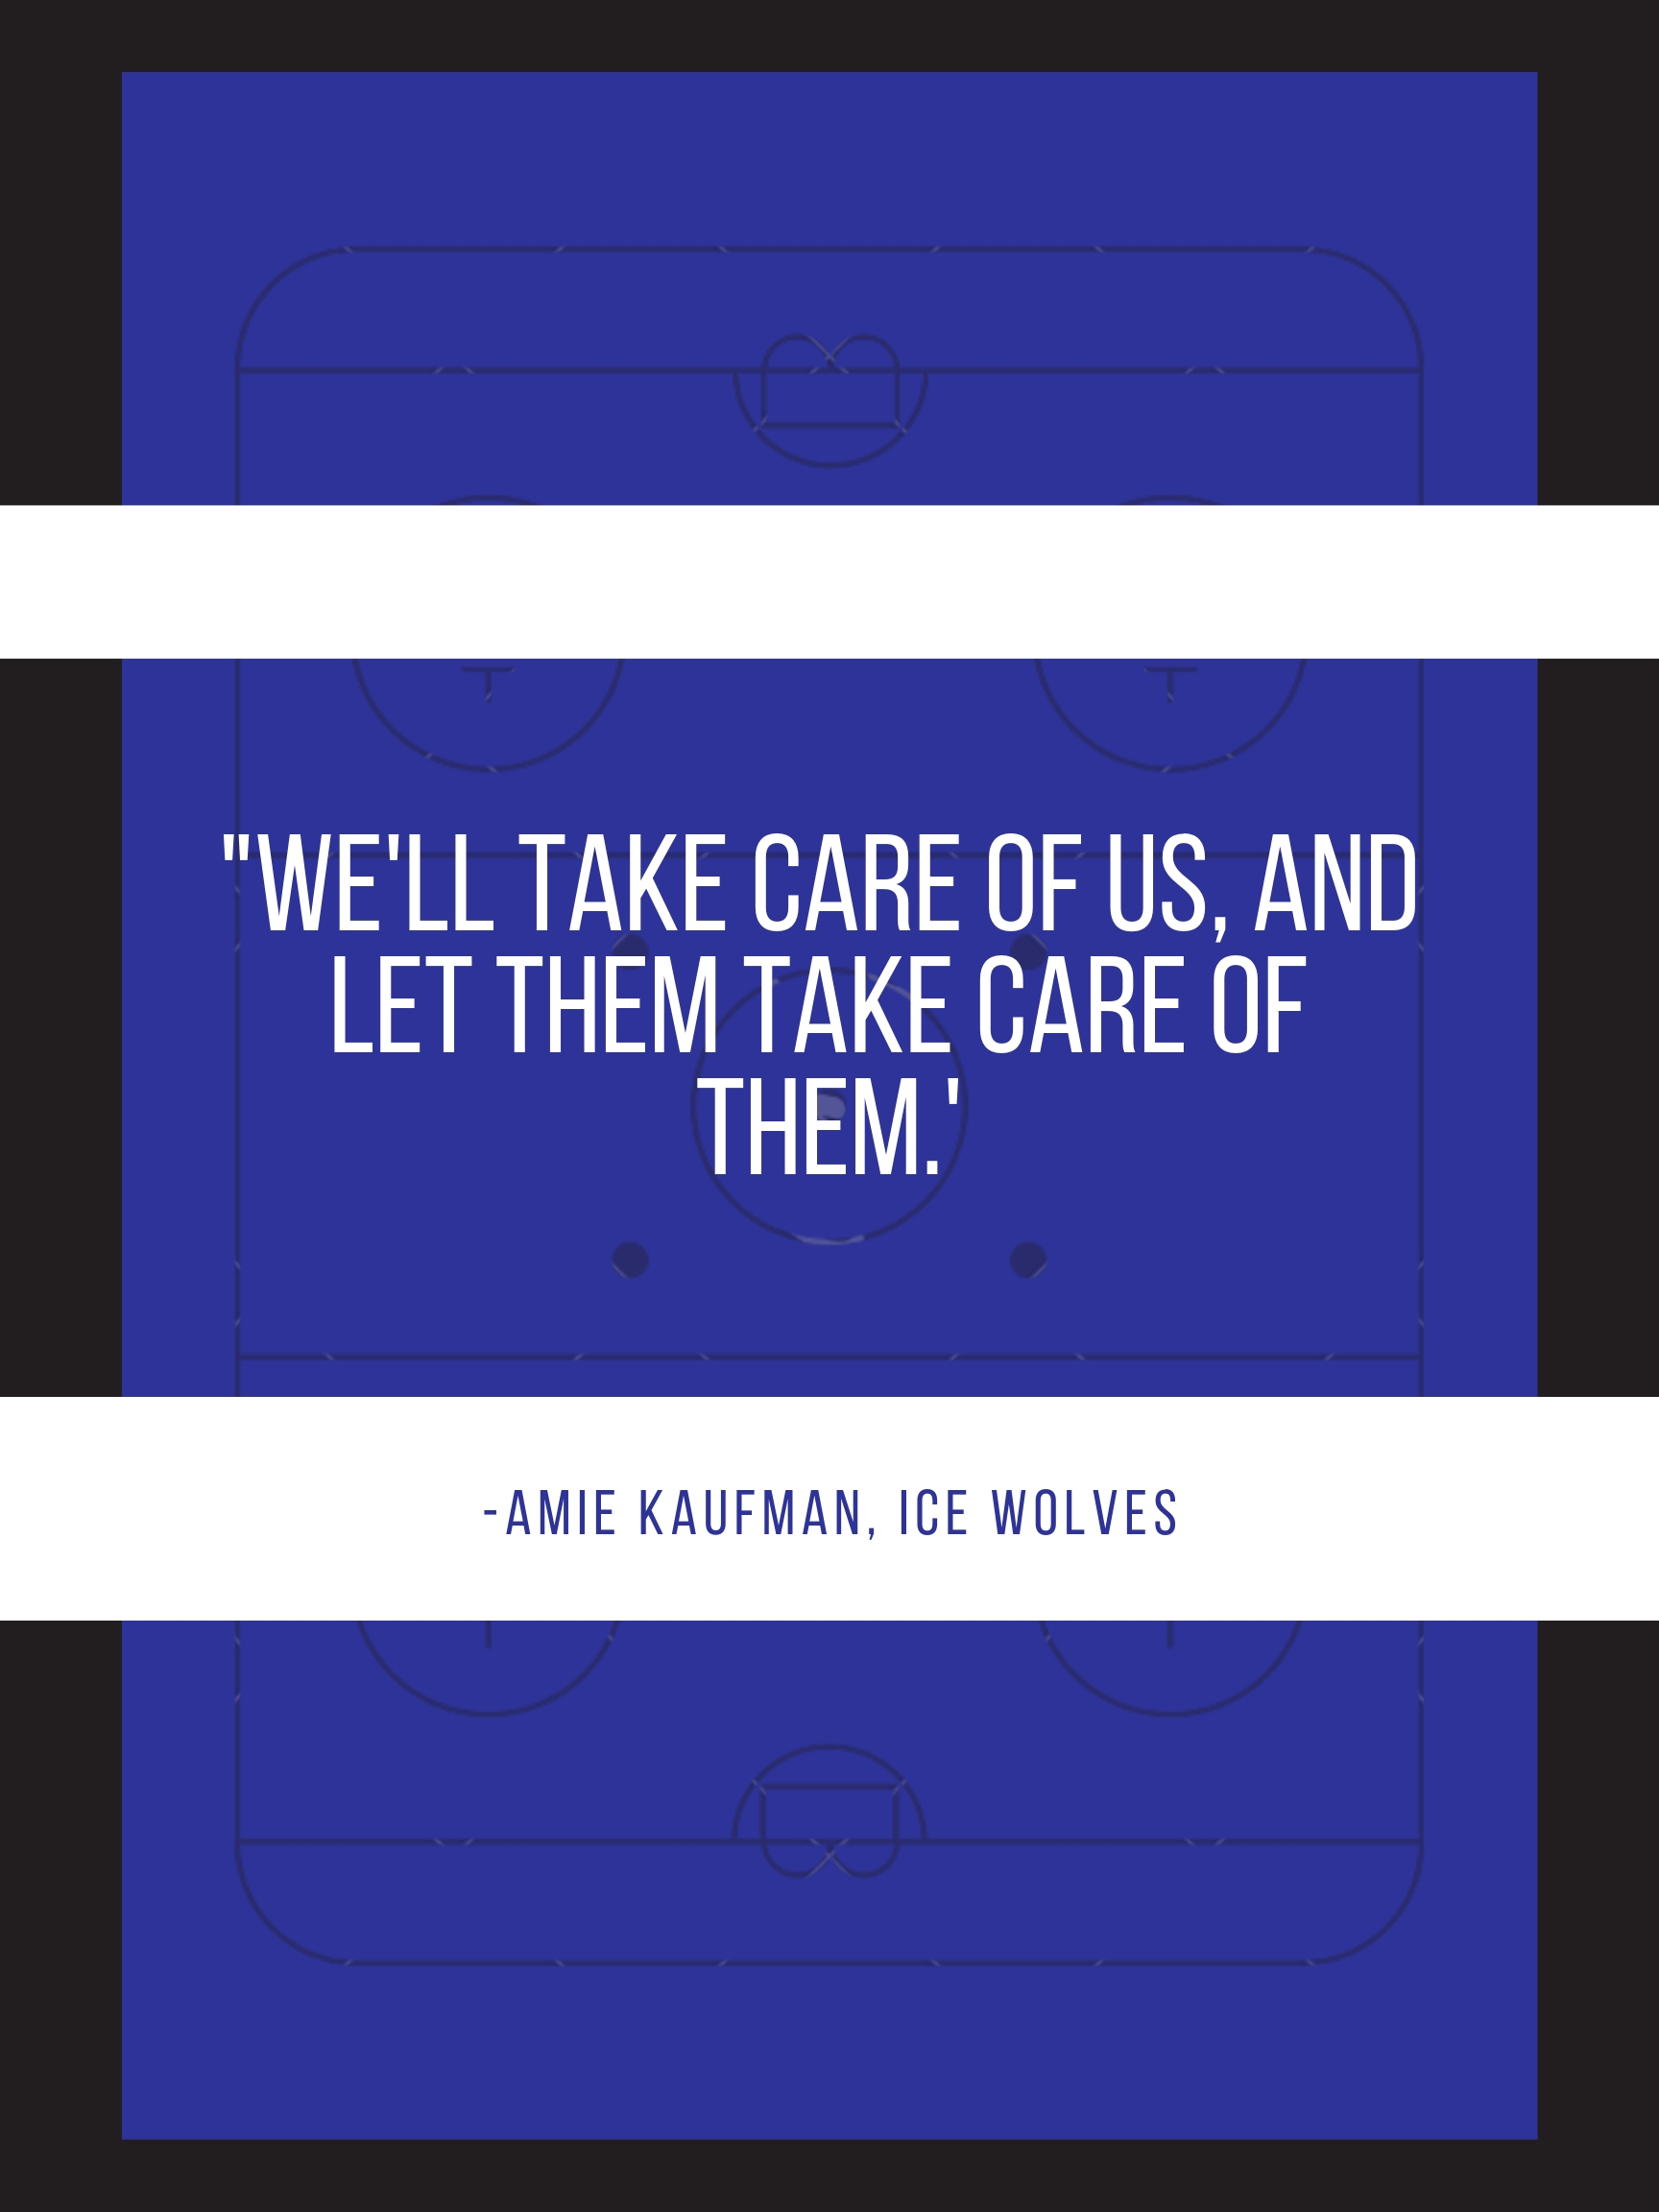 Ice Wolves Quotes